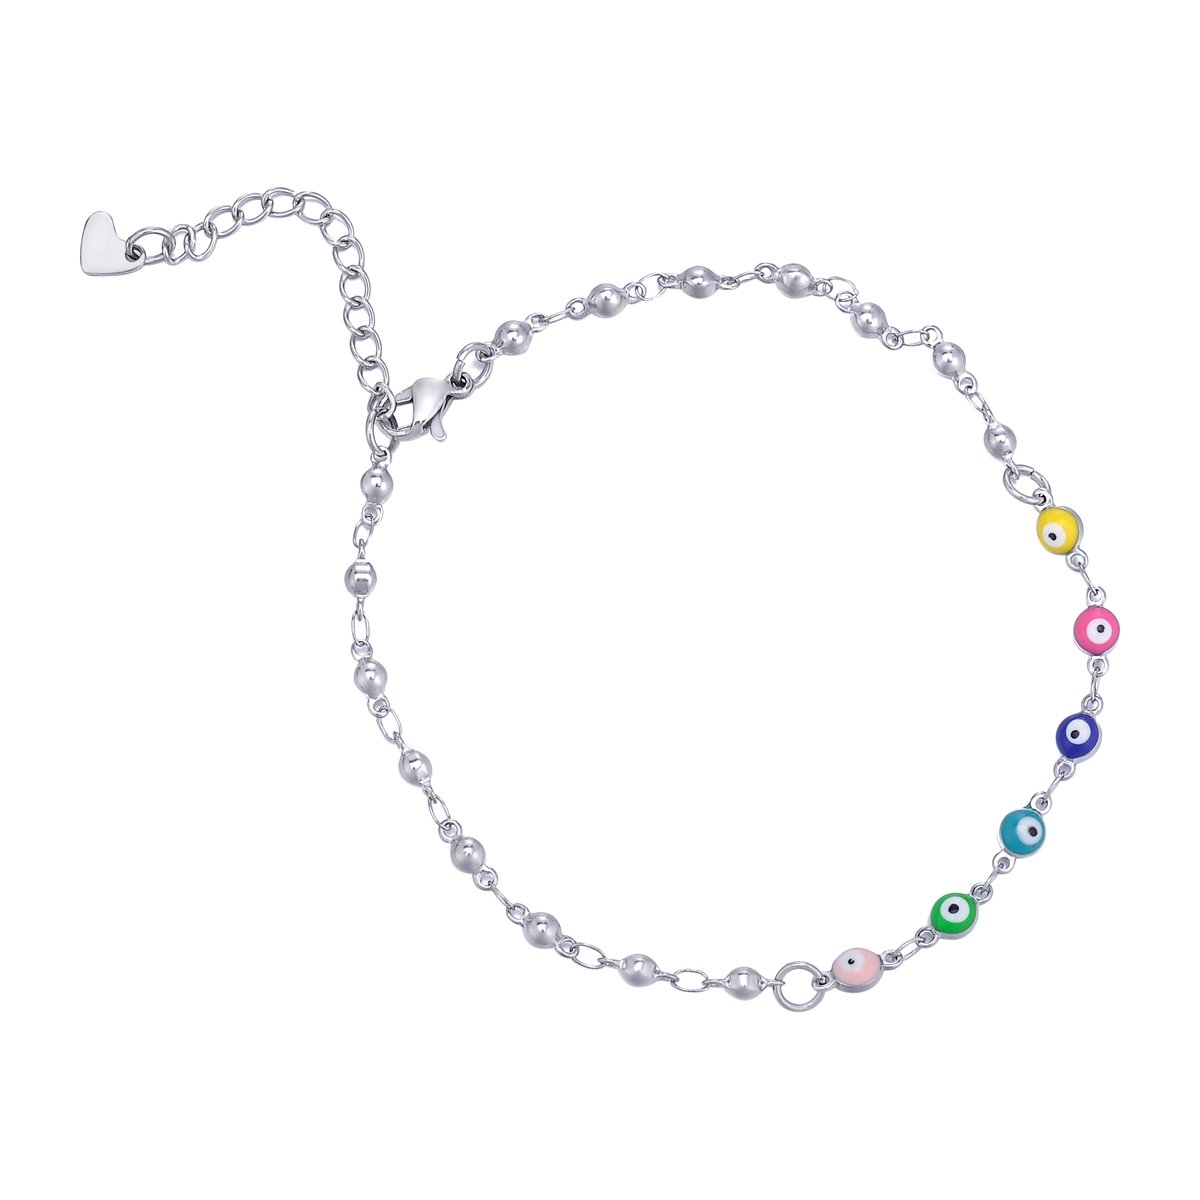 HooAMI Stainless Steel Silver Anklet Mini Evil Eye Chain Ankle Bracelet for Women & Girls